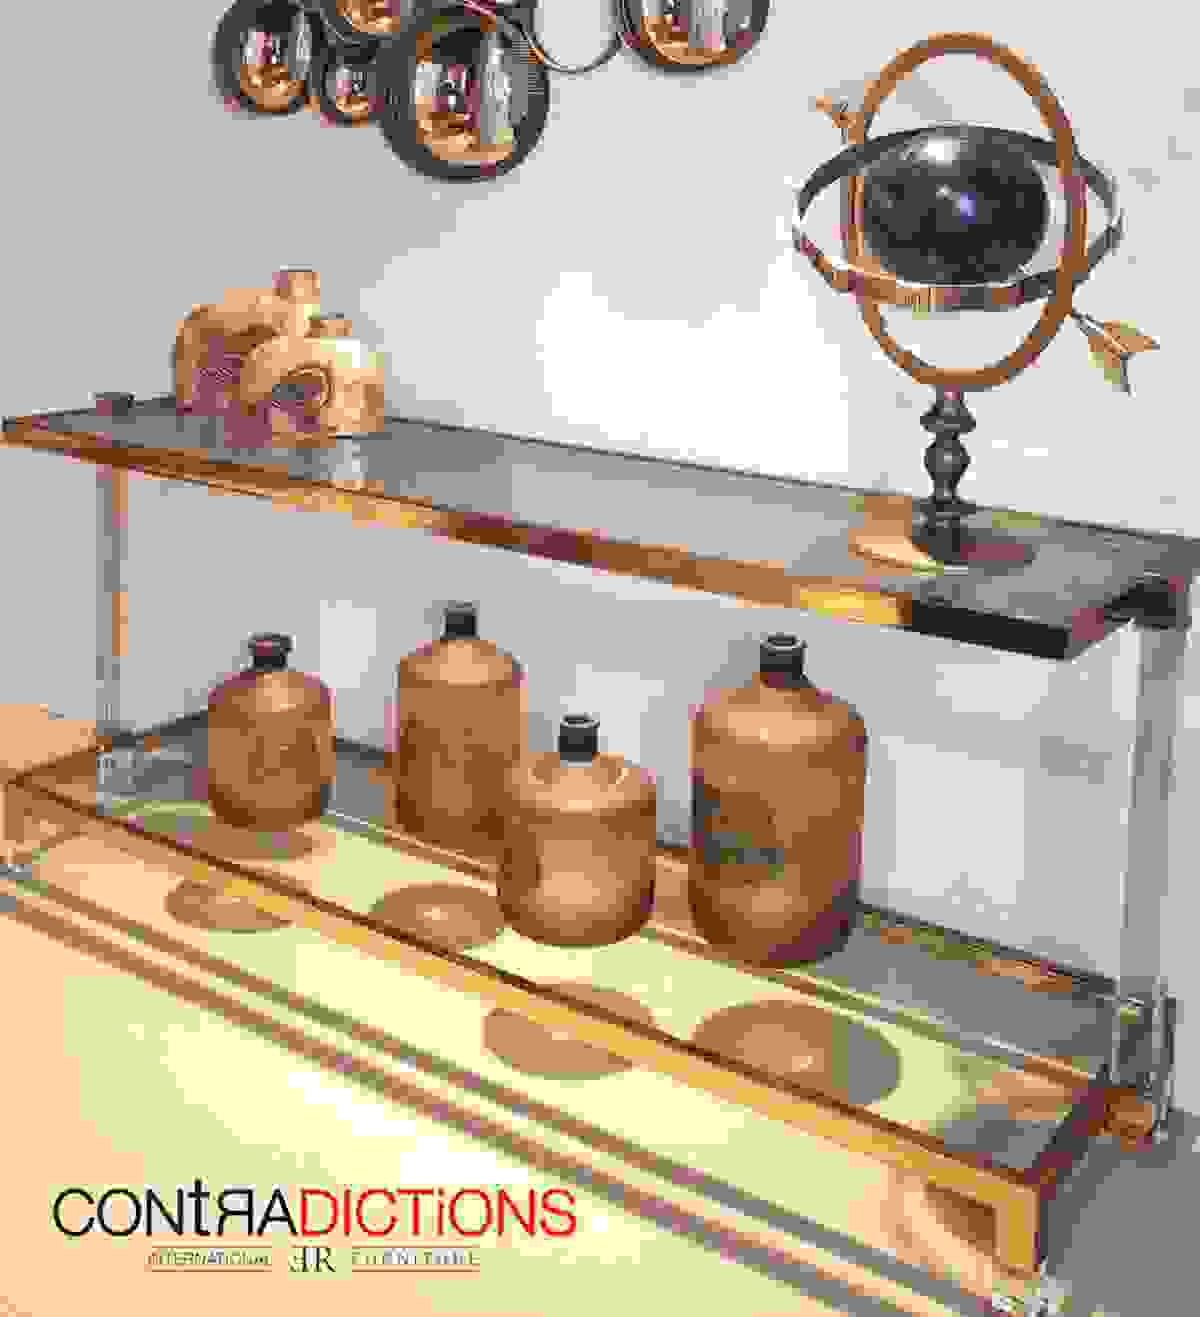 CONTRADICTIONS-DECOR-OBJECTS-04.jpg